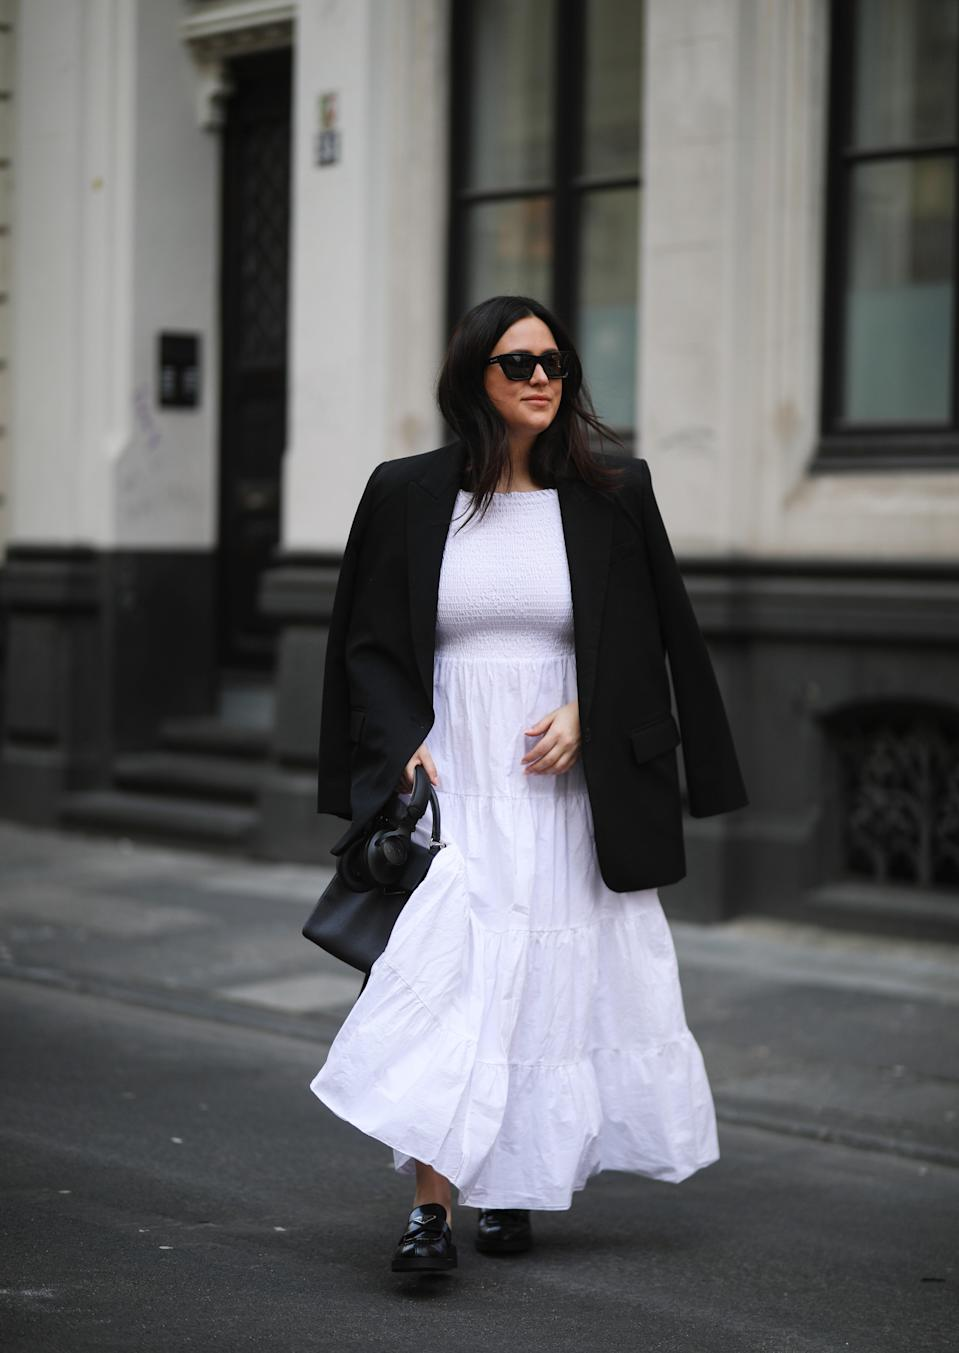 """Whether adorned with puffed sleeves or smocked details, the billowing <a href=""""https://www.glamour.com/gallery/things-to-buy-through-glamour-rewards?mbid=synd_yahoo_rss"""" rel=""""nofollow noopener"""" target=""""_blank"""" data-ylk=""""slk:house dress"""" class=""""link rapid-noclick-resp"""">house dress</a> is what you put on when you're feeling playful and fancy...but also ready to sprawl out on the couch with a plate of <a href=""""https://www.glamour.com/story/nuggs-review?mbid=synd_yahoo_rss"""" rel=""""nofollow noopener"""" target=""""_blank"""" data-ylk=""""slk:chicken nuggets"""" class=""""link rapid-noclick-resp"""">chicken nuggets</a>. They're another welcome trend to come out of our comfort-first lifestyle—and look great with <a href=""""https://www.glamour.com/gallery/best-summer-sandals?mbid=synd_yahoo_rss"""" rel=""""nofollow noopener"""" target=""""_blank"""" data-ylk=""""slk:strappy sandals"""" class=""""link rapid-noclick-resp"""">strappy sandals</a> or dressed up with a blazer and statement footwear for the office."""